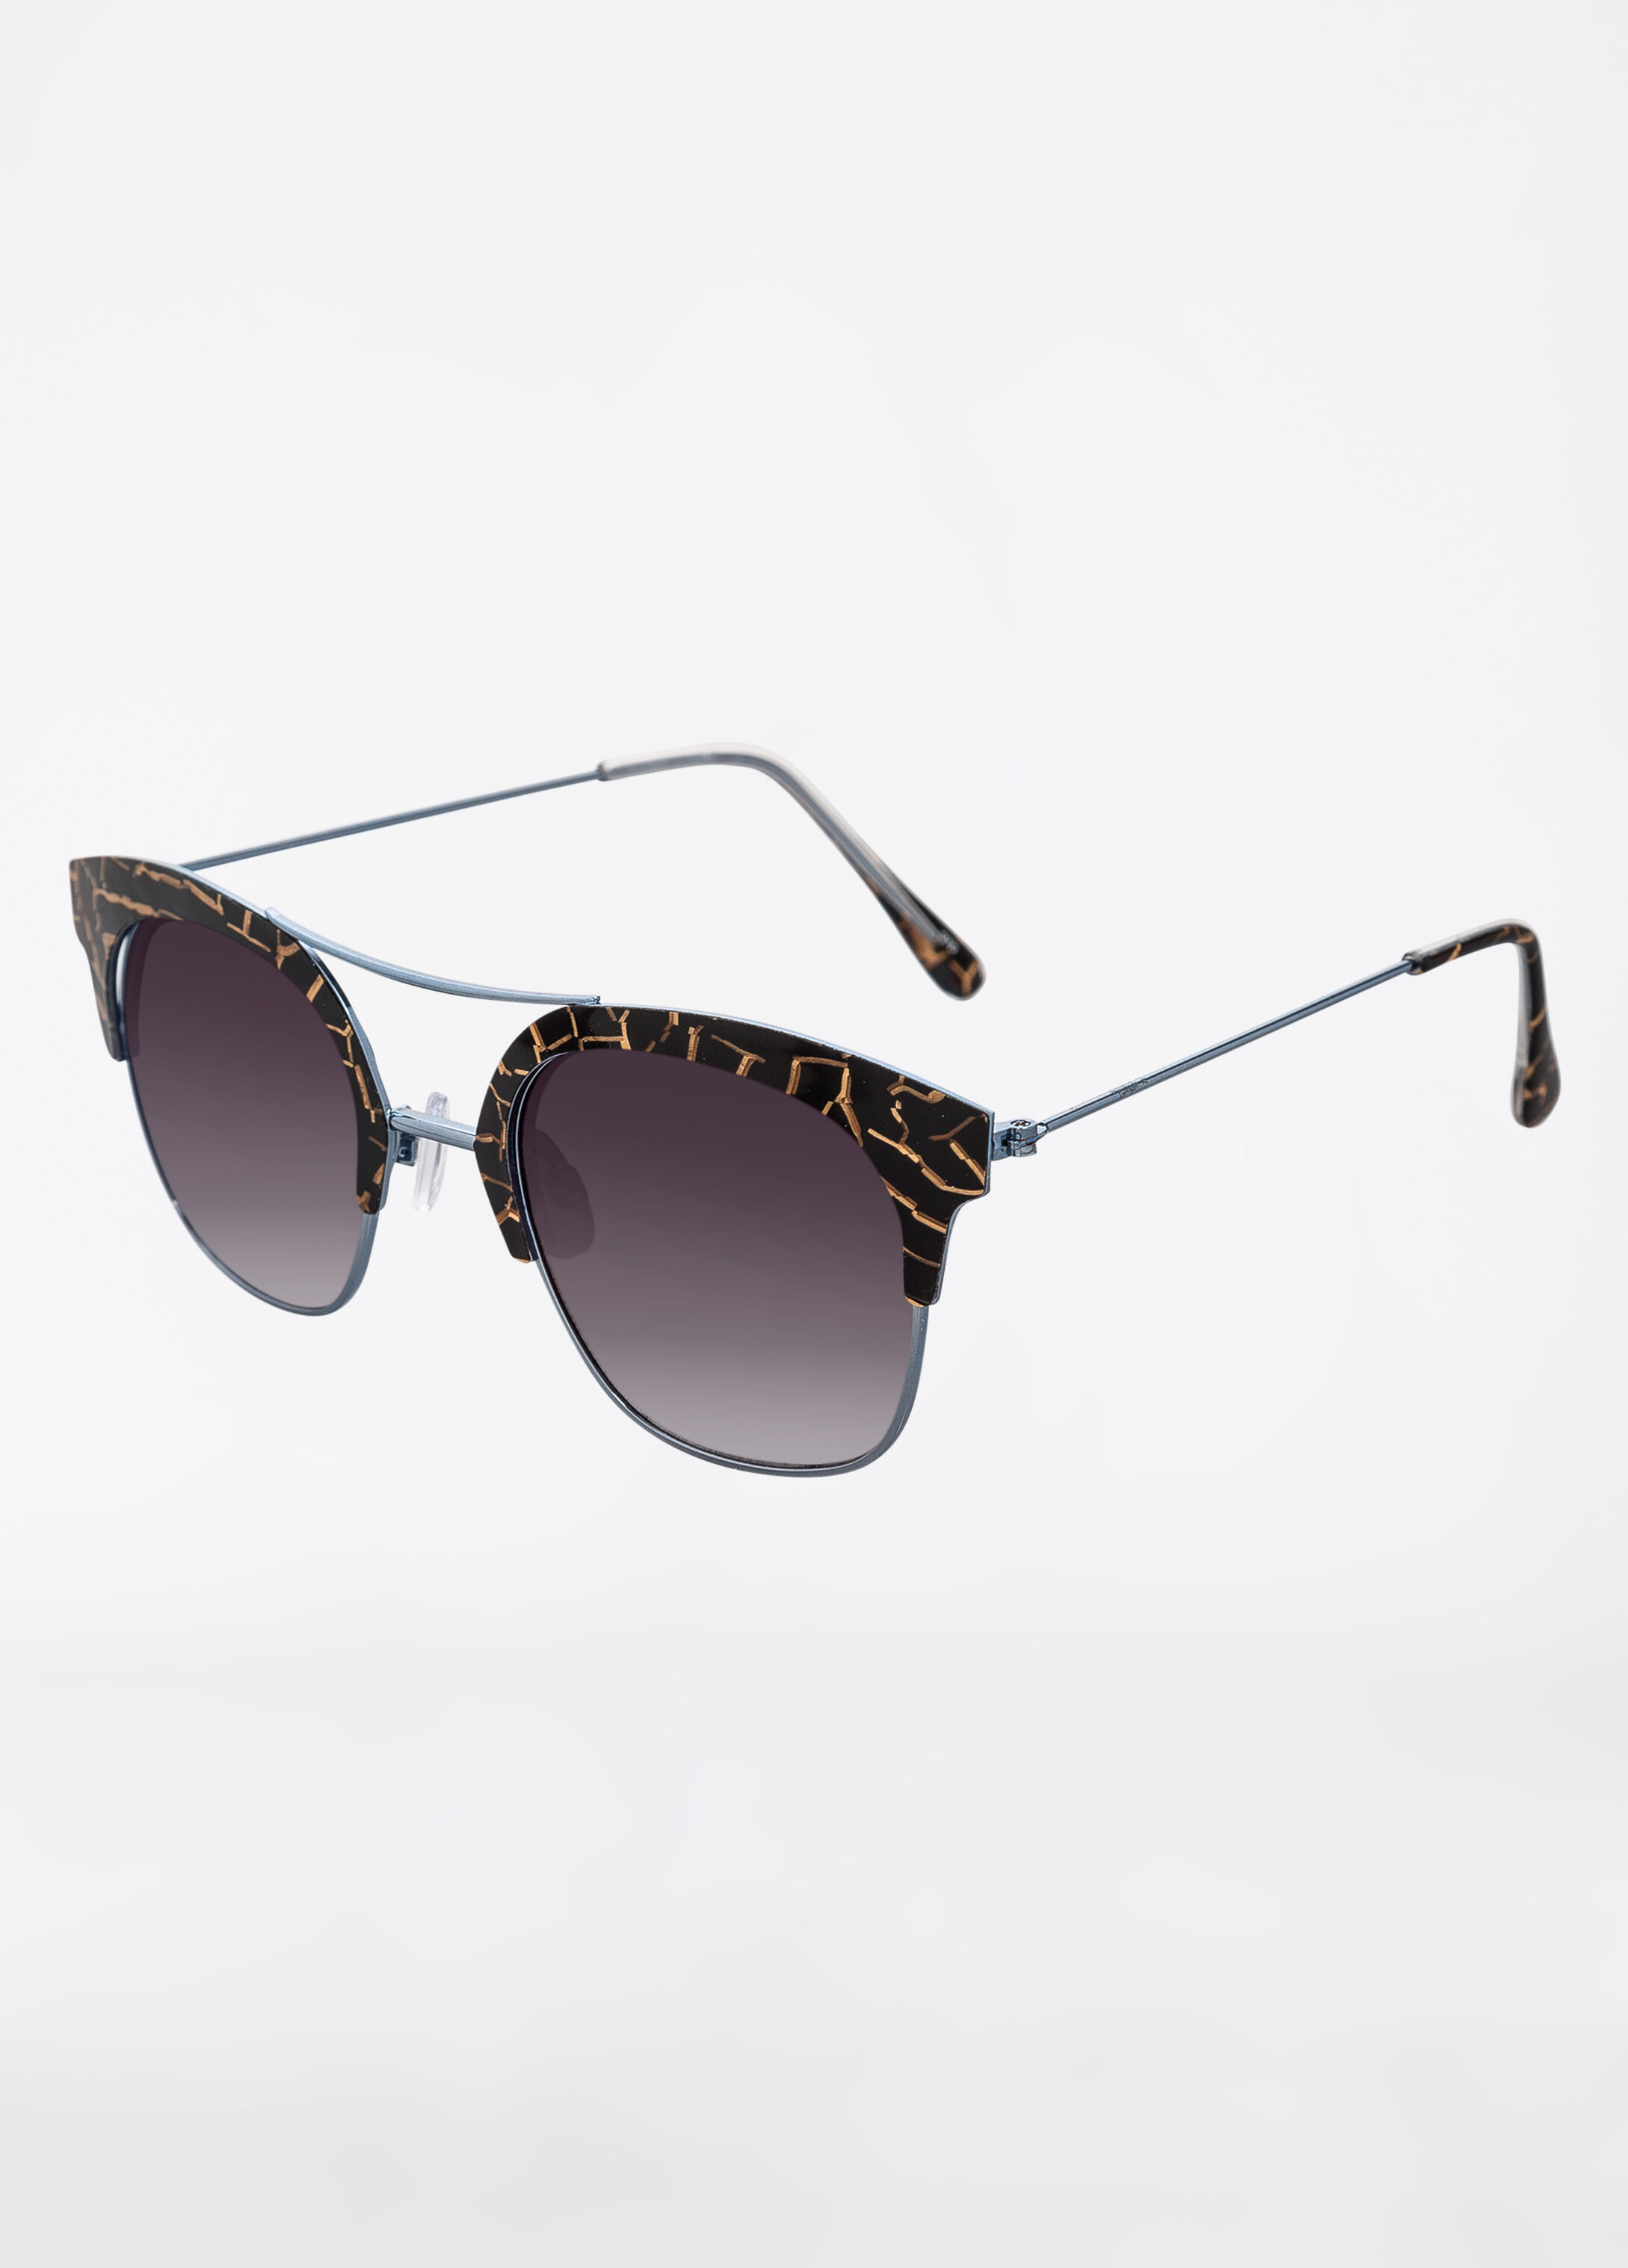 Giraffe Print Semi-Rimless Sunglasses